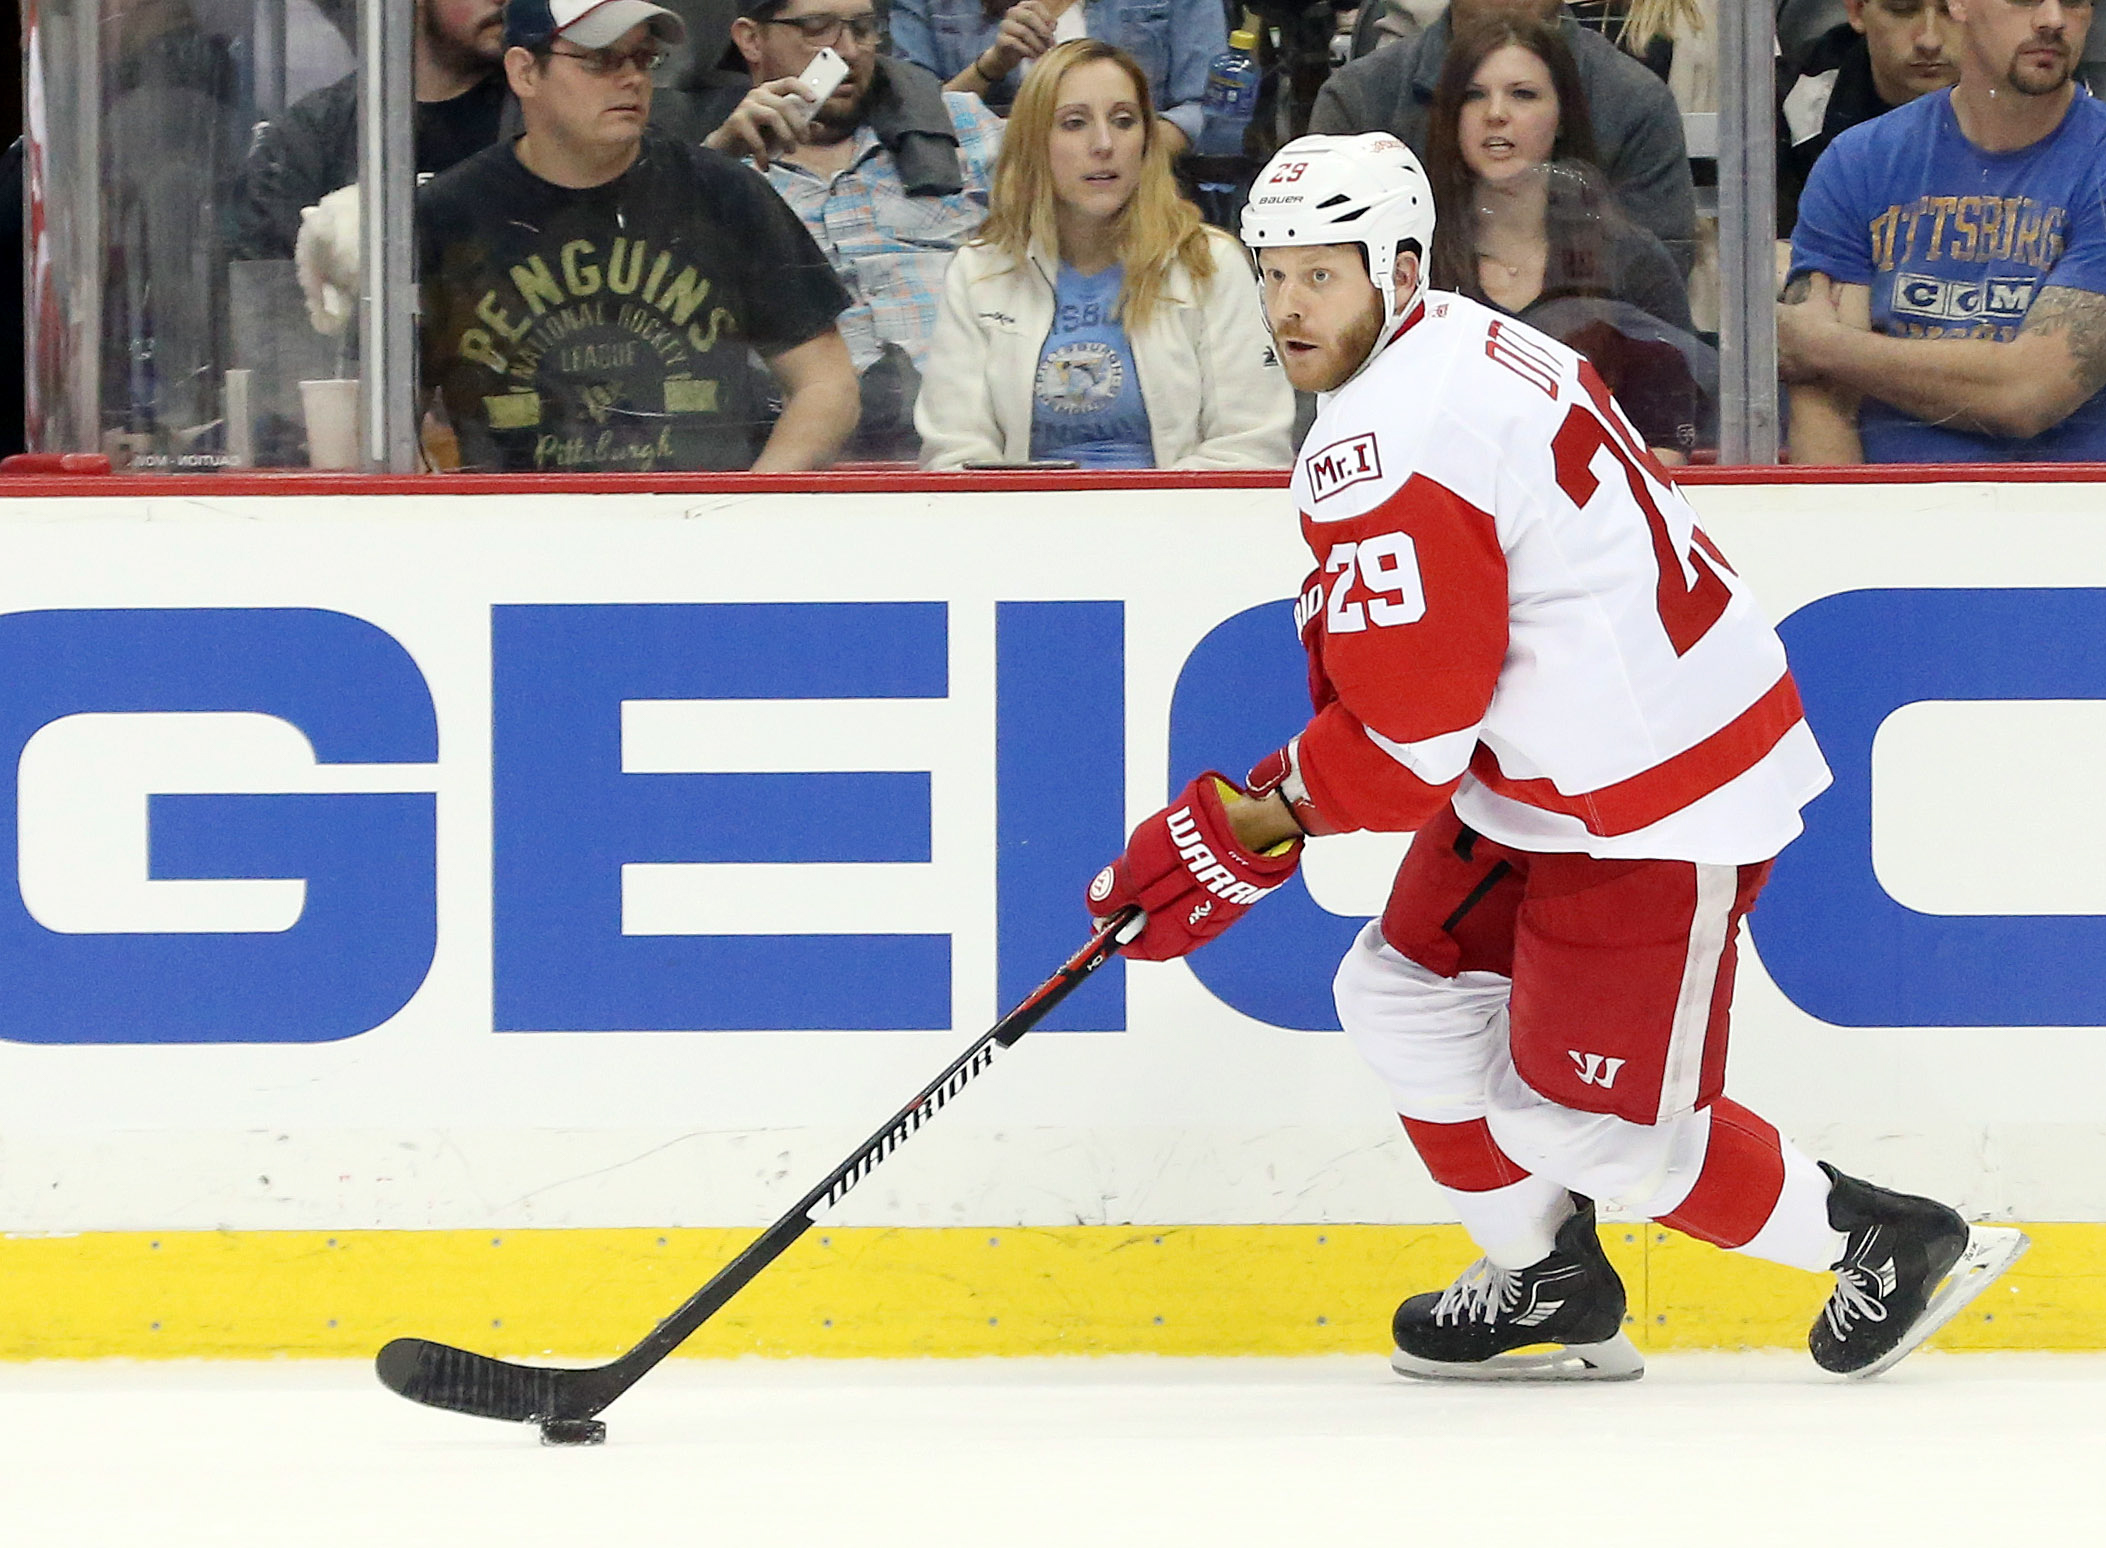 9894448-nhl-detroit-red-wings-at-pittsburgh-penguins